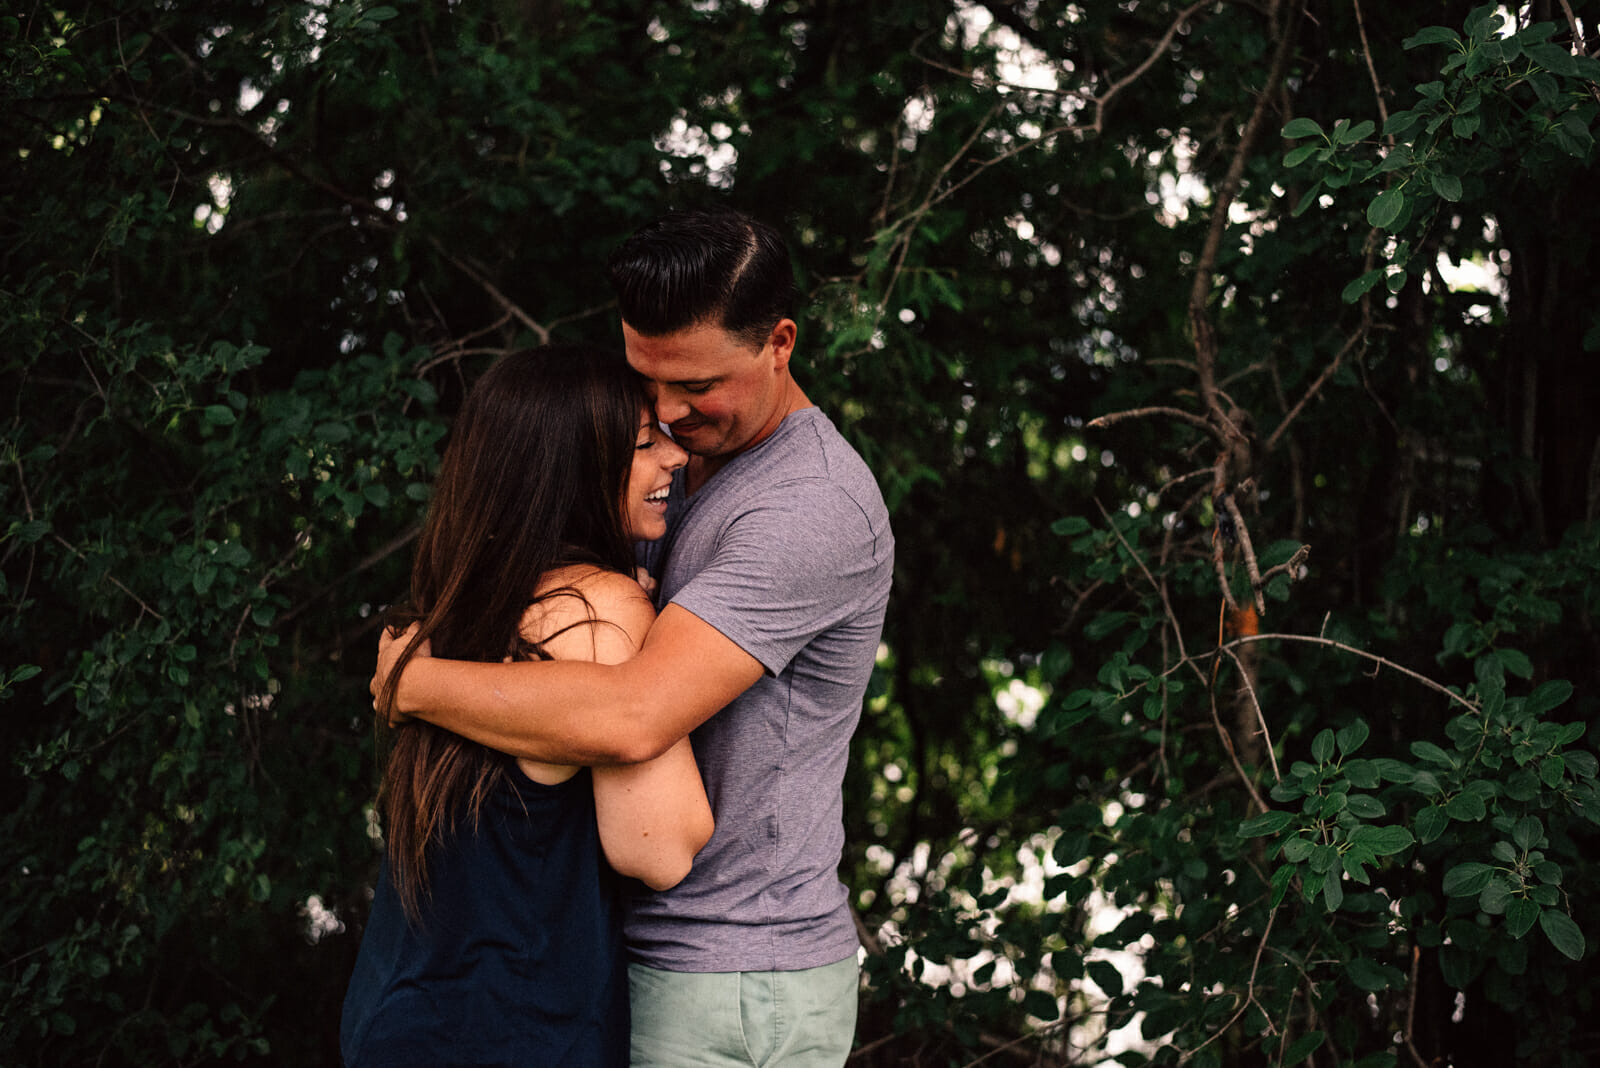 husband and wife hug and laugh in forest